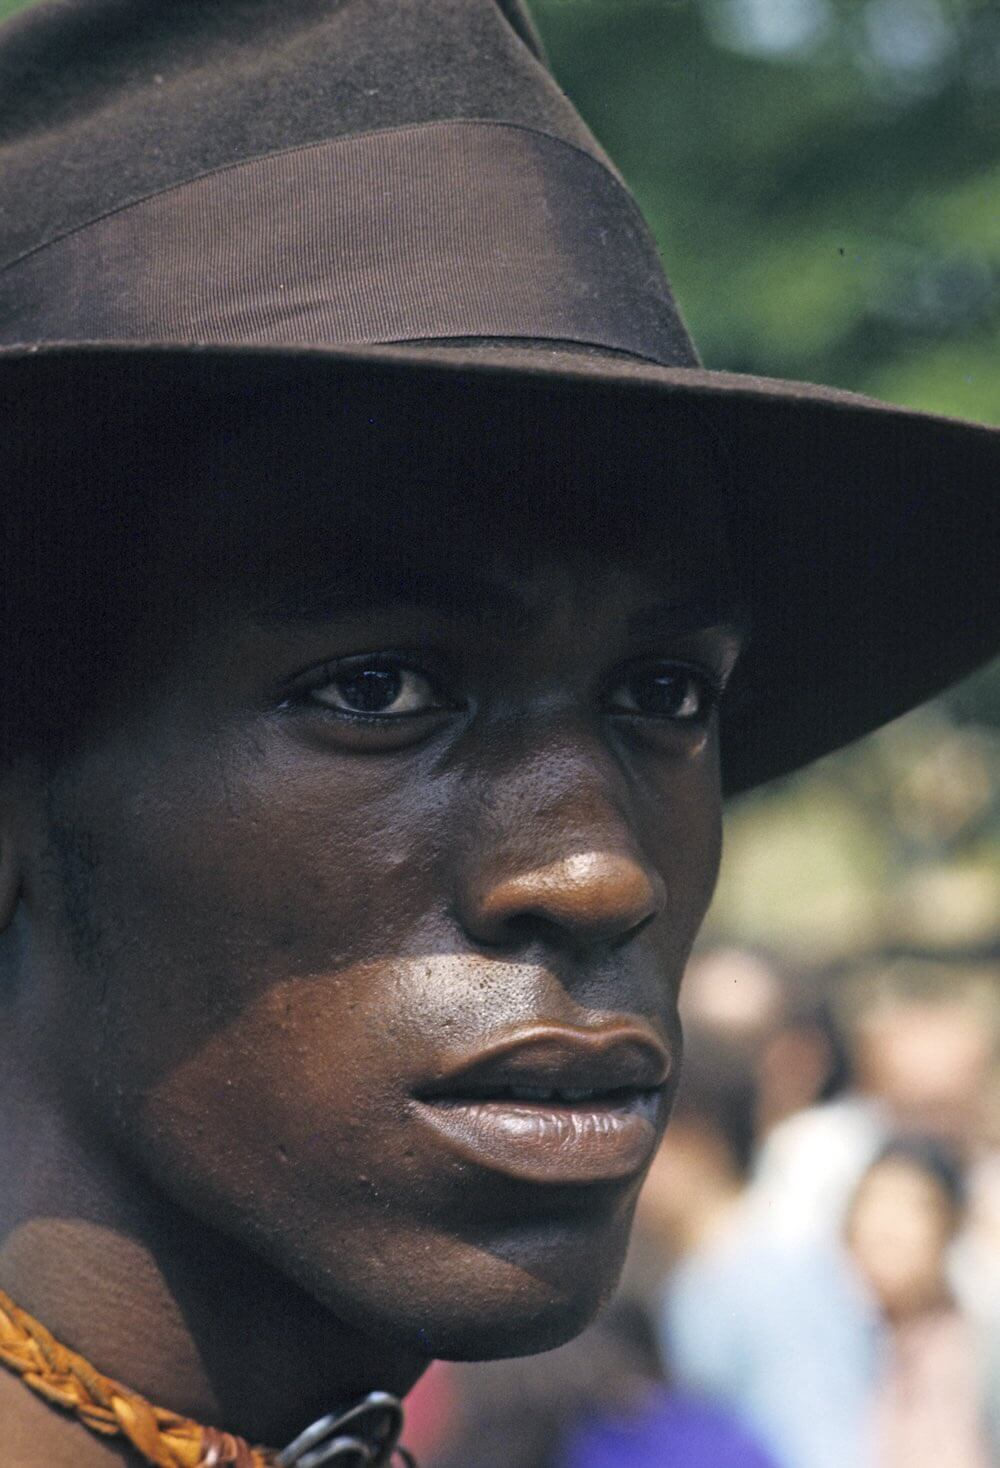 Harlem: The Ghetto. New York City- Harlem- juillet 1970: le ghetto; portrait d'un afro-amÈricain coiffÈ d'un chapeau. (Photo by Jack Garofalo/Paris Match via Getty Images)